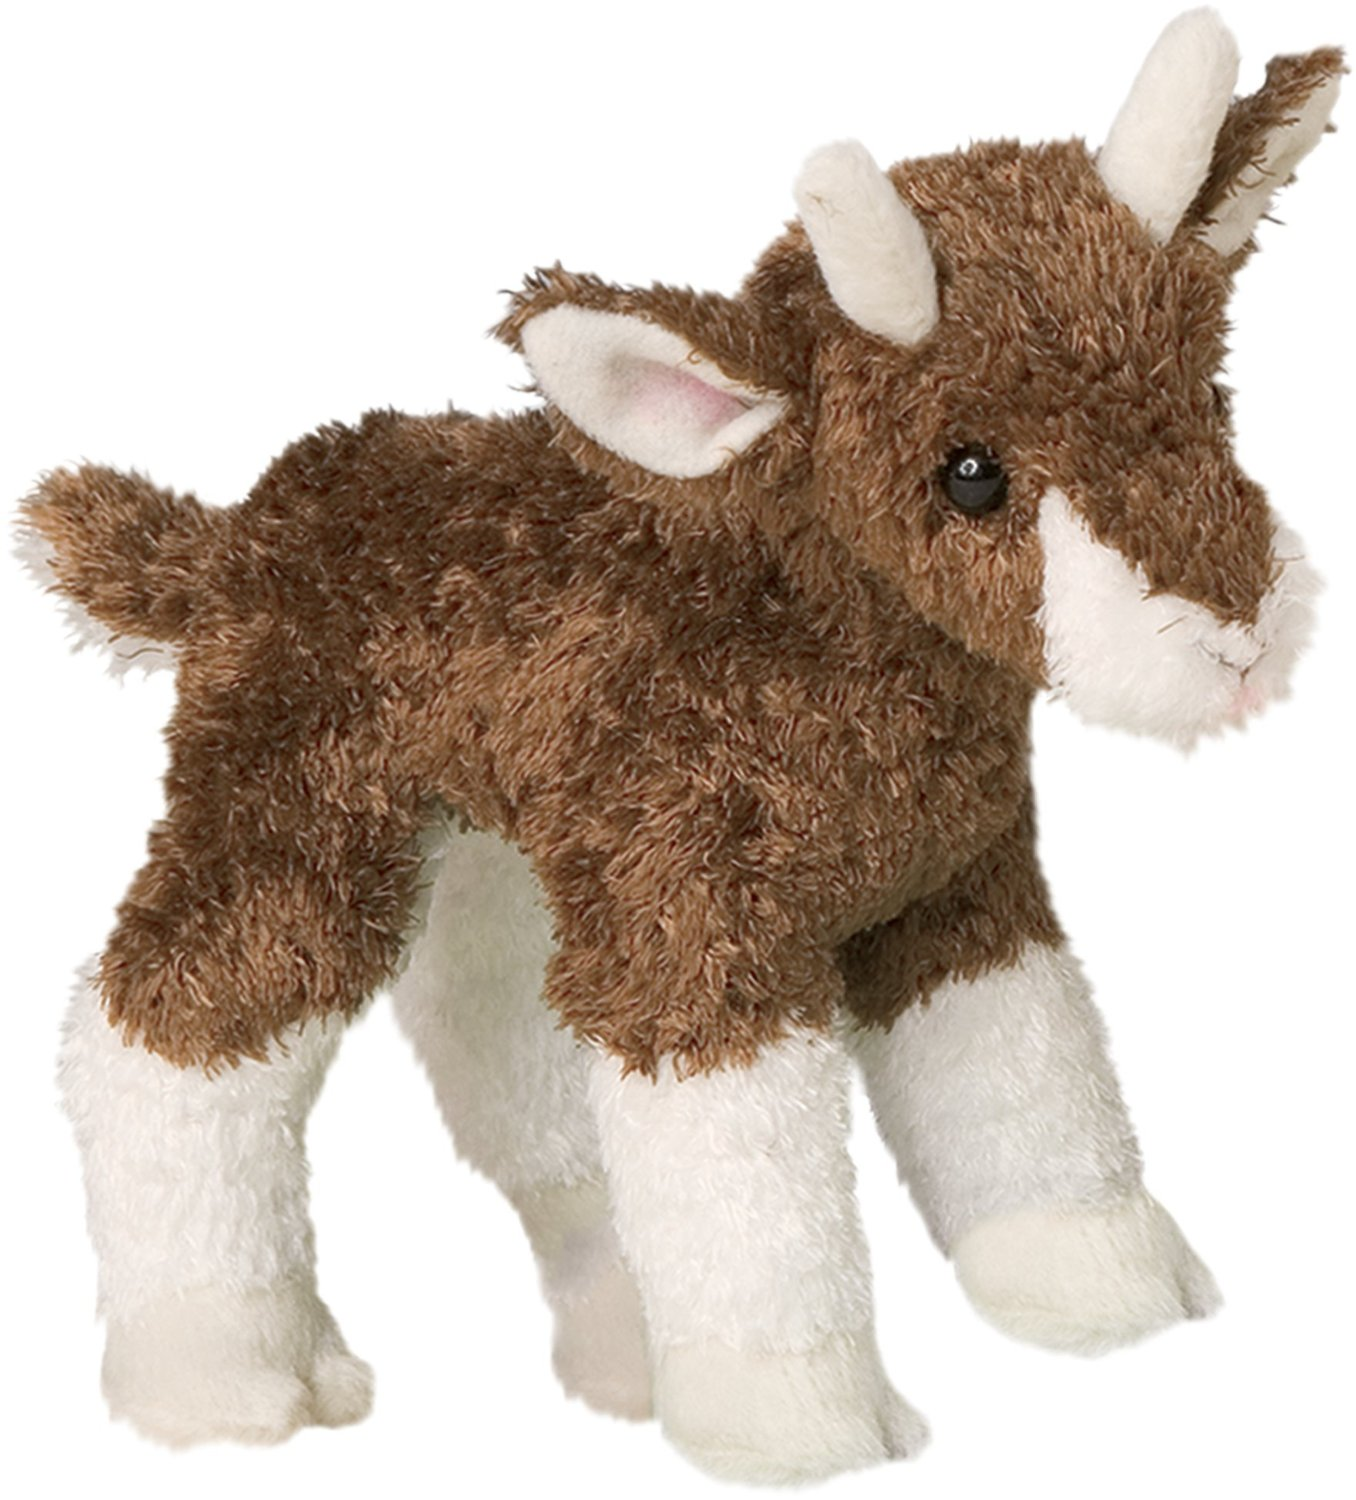 Goat Stuffed Animals   Kritters in the Mailbox   Goat ...